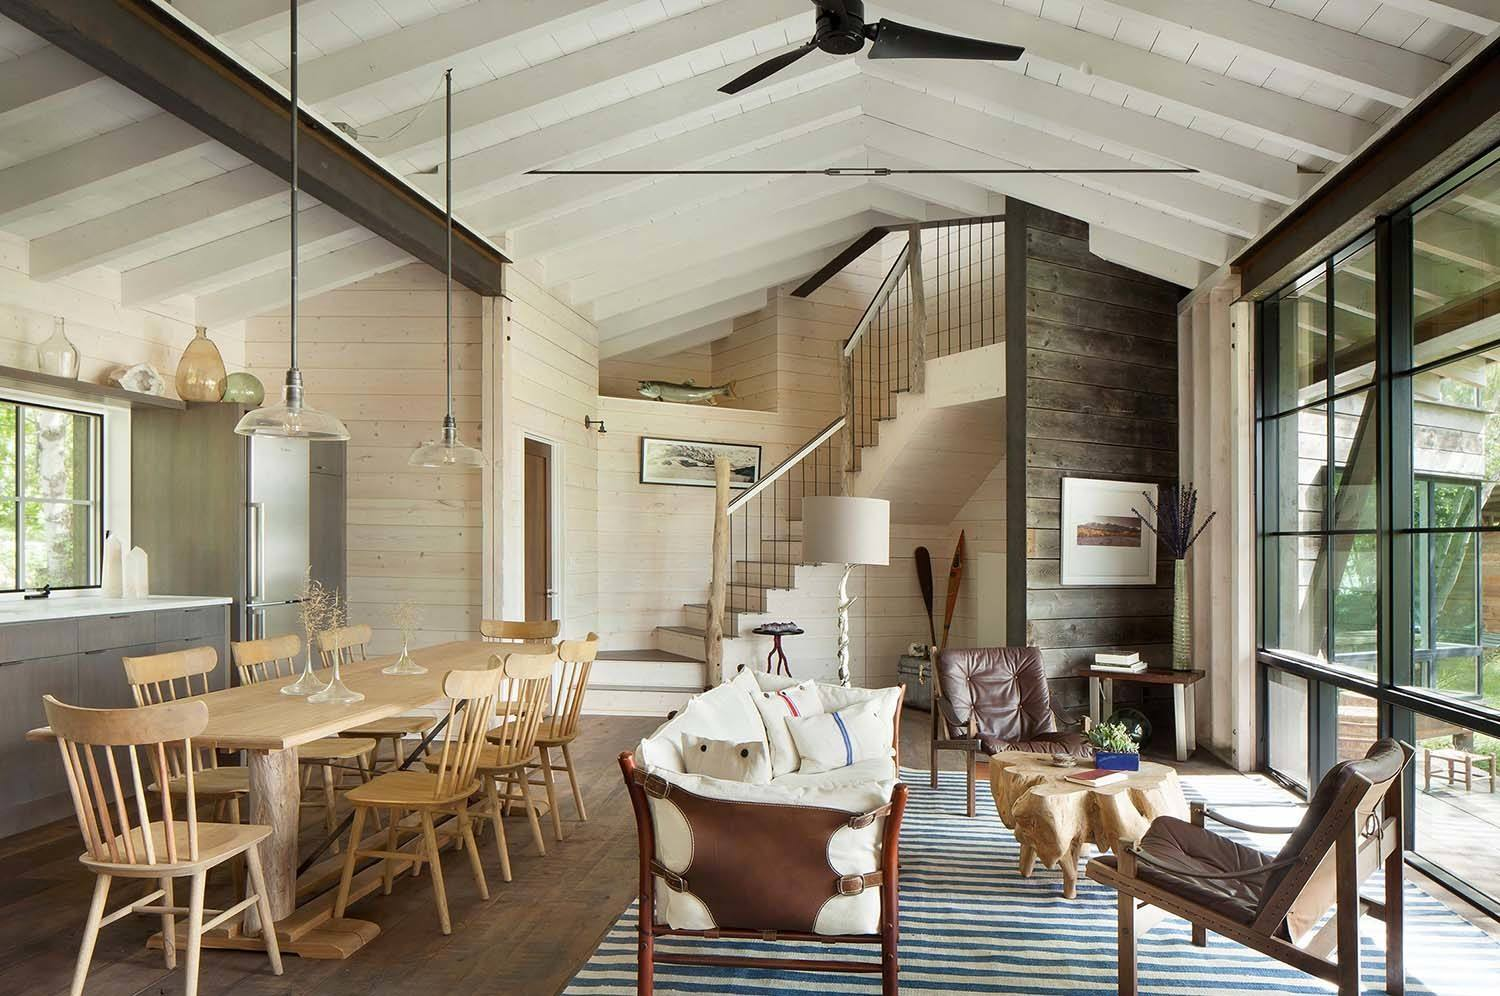 Blog for Rustic architecture